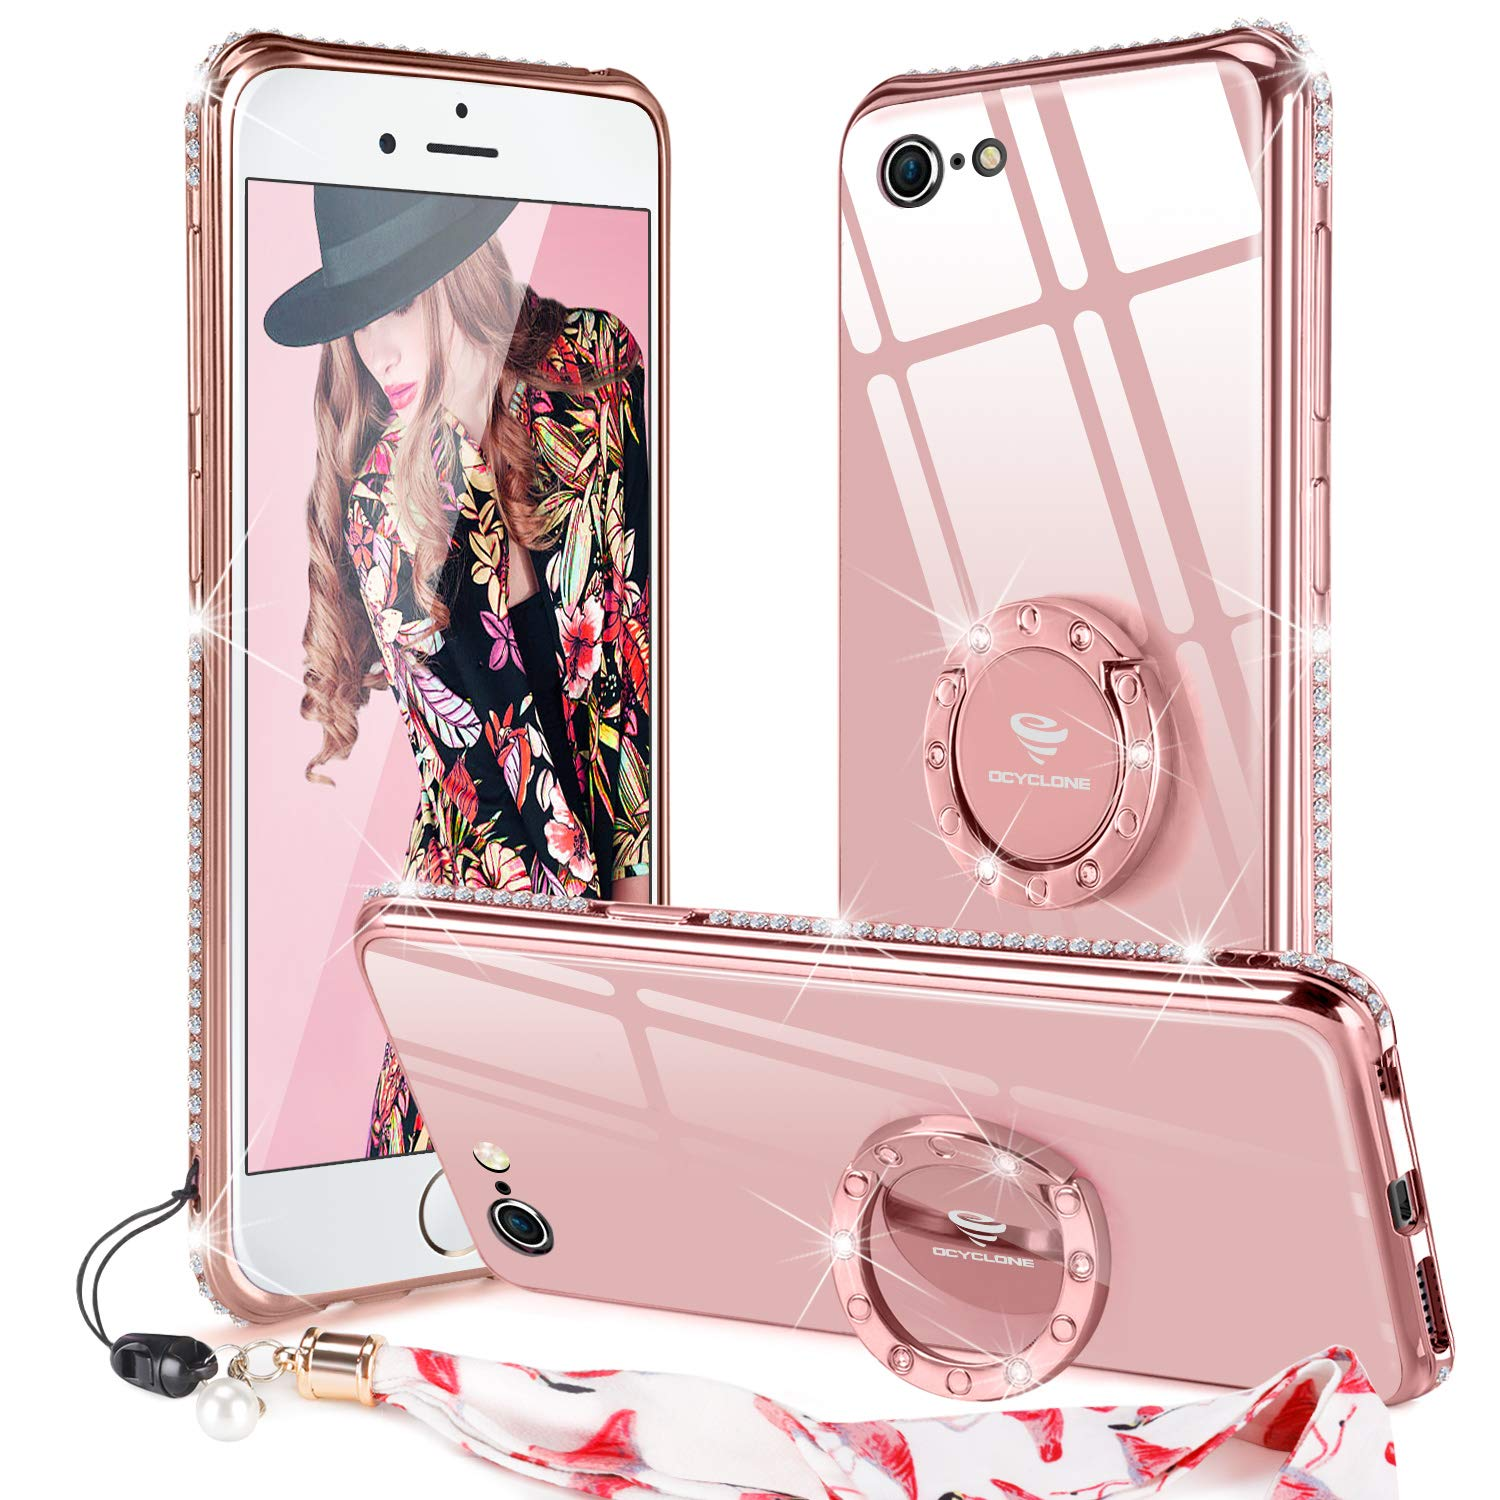 diamond iphone 6s plus case